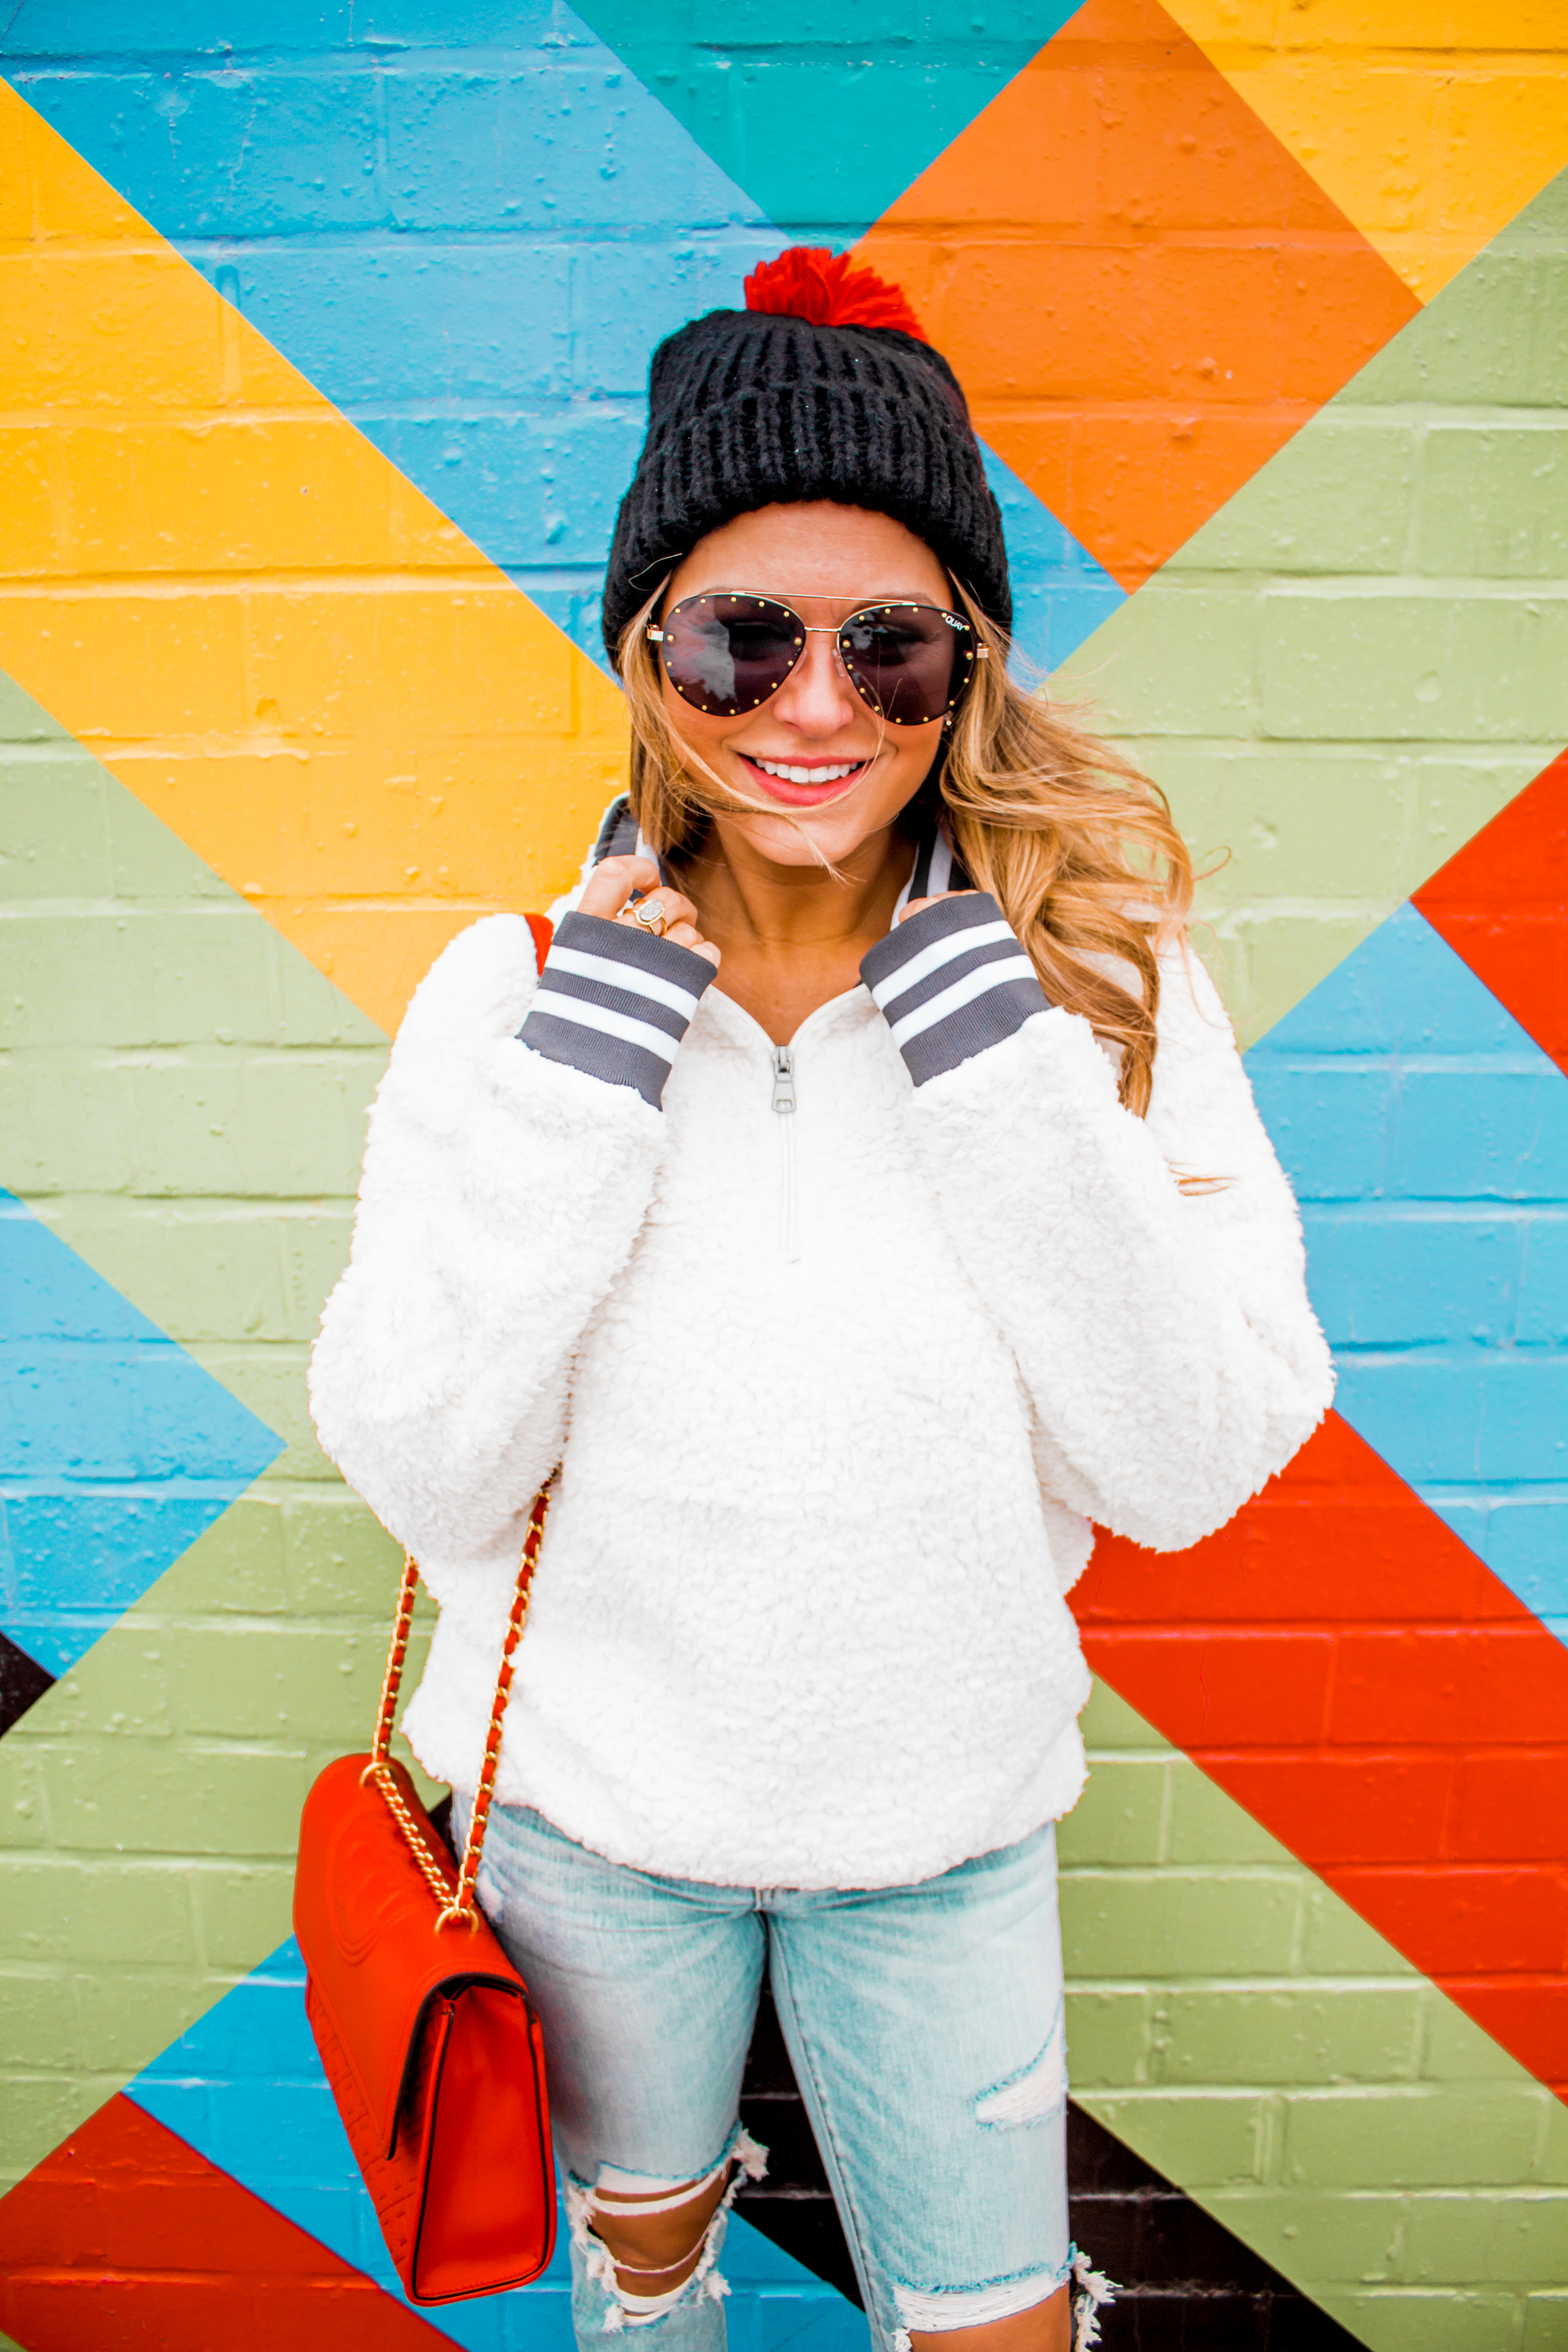 Nebraska - Women's Fashion - Sherpa - Husker - Pullover - Husker Gear - Omaha Blogger - Sabby Style - Casual Outfit - 8